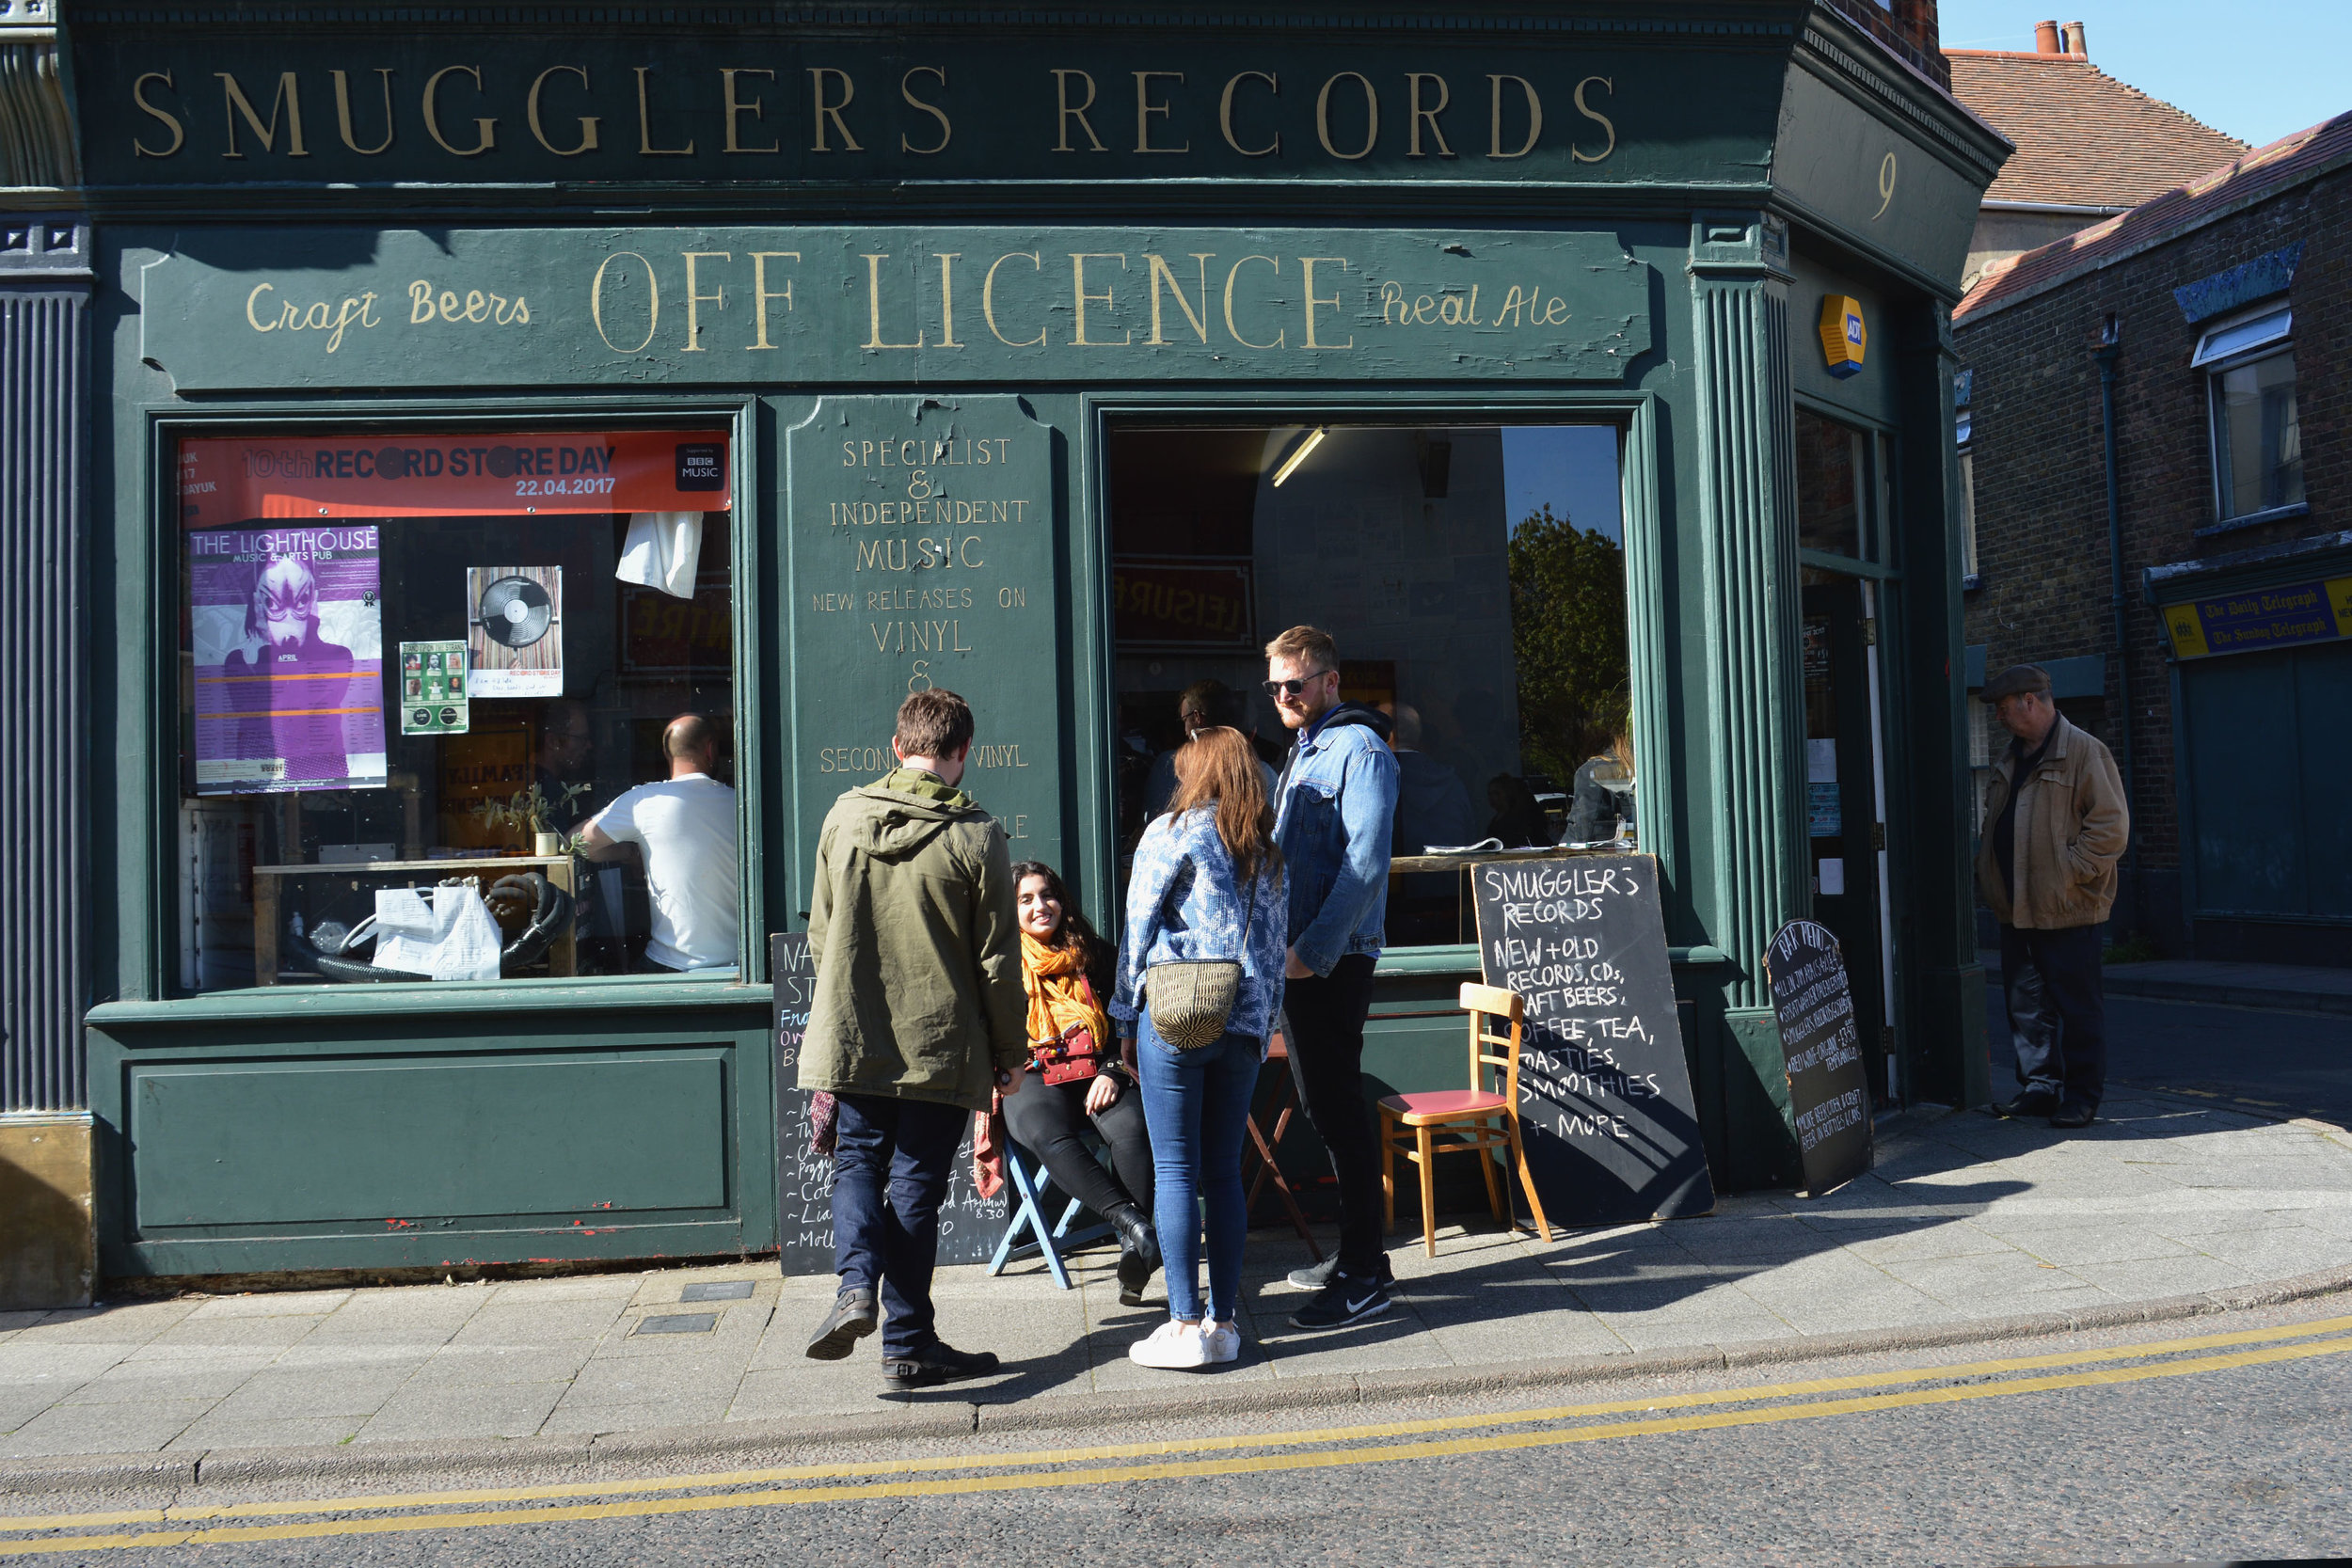 Smugglers-Records-Discover-Deal.jpg